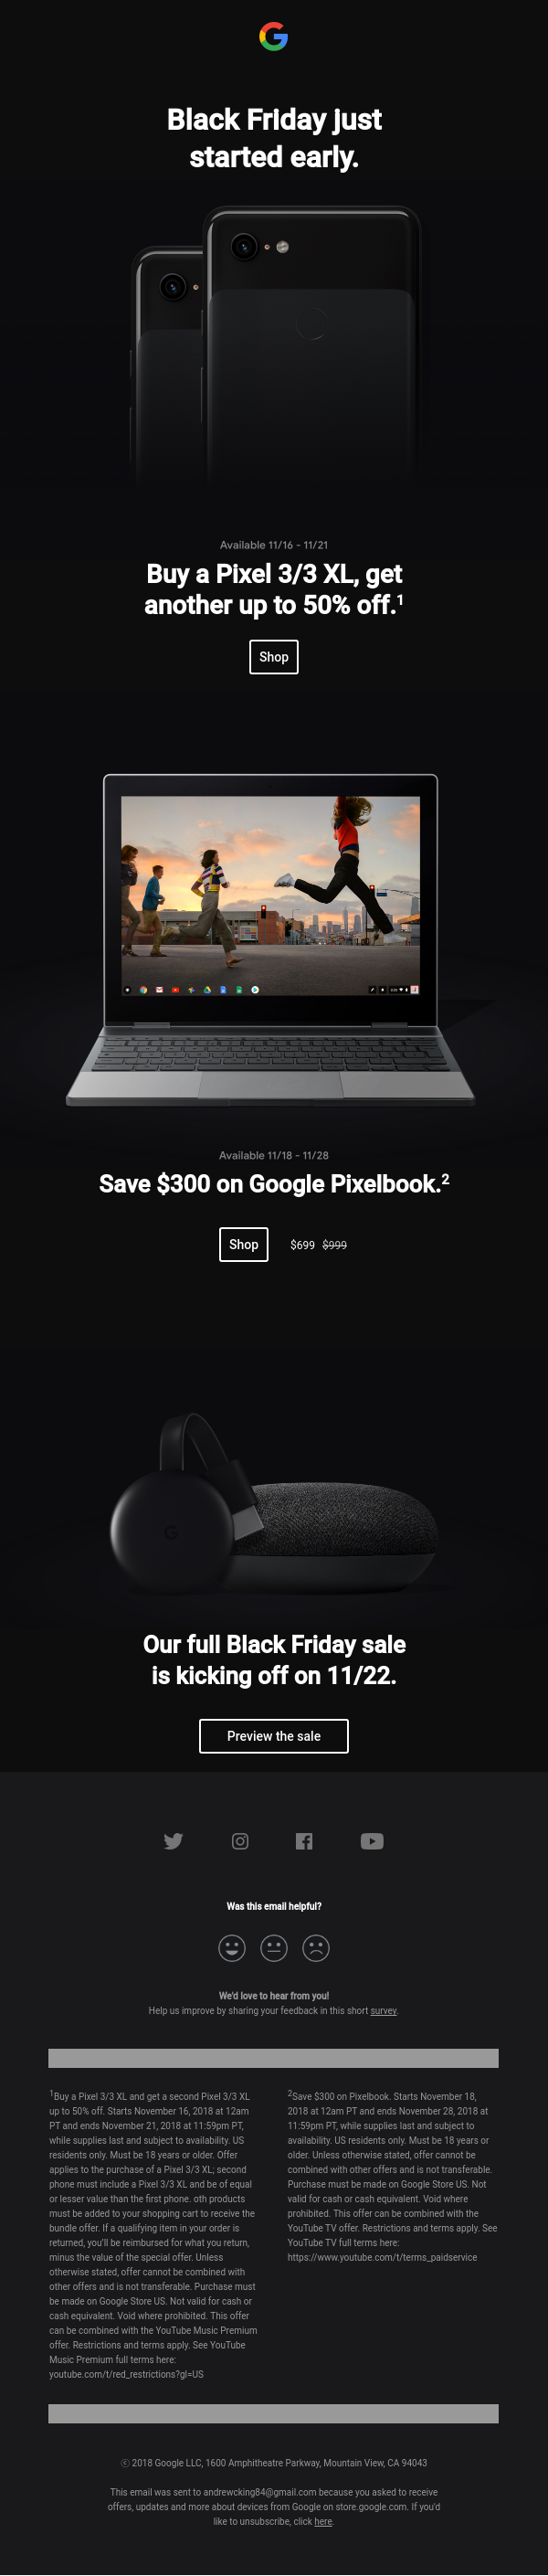 Black Friday email campaign from Google